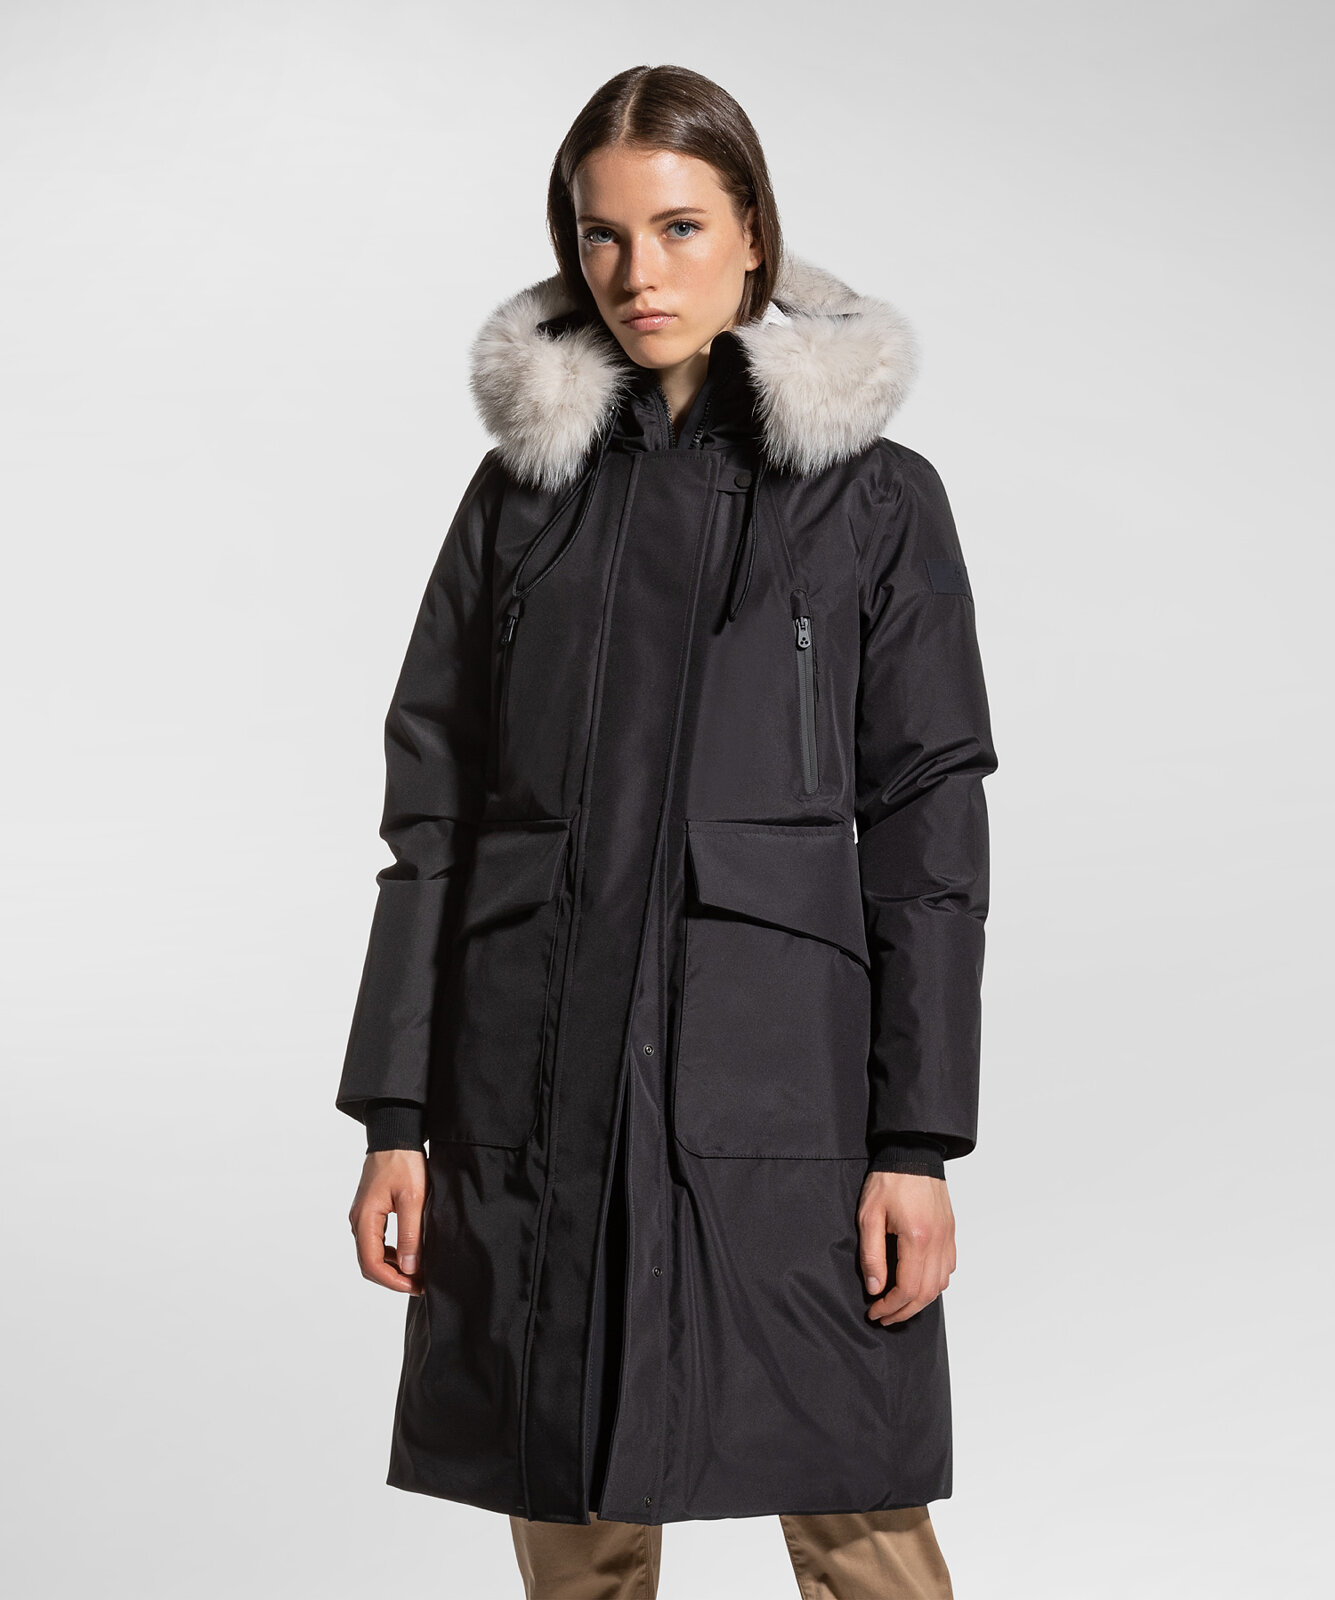 Parka in laminated fabric - Peuterey